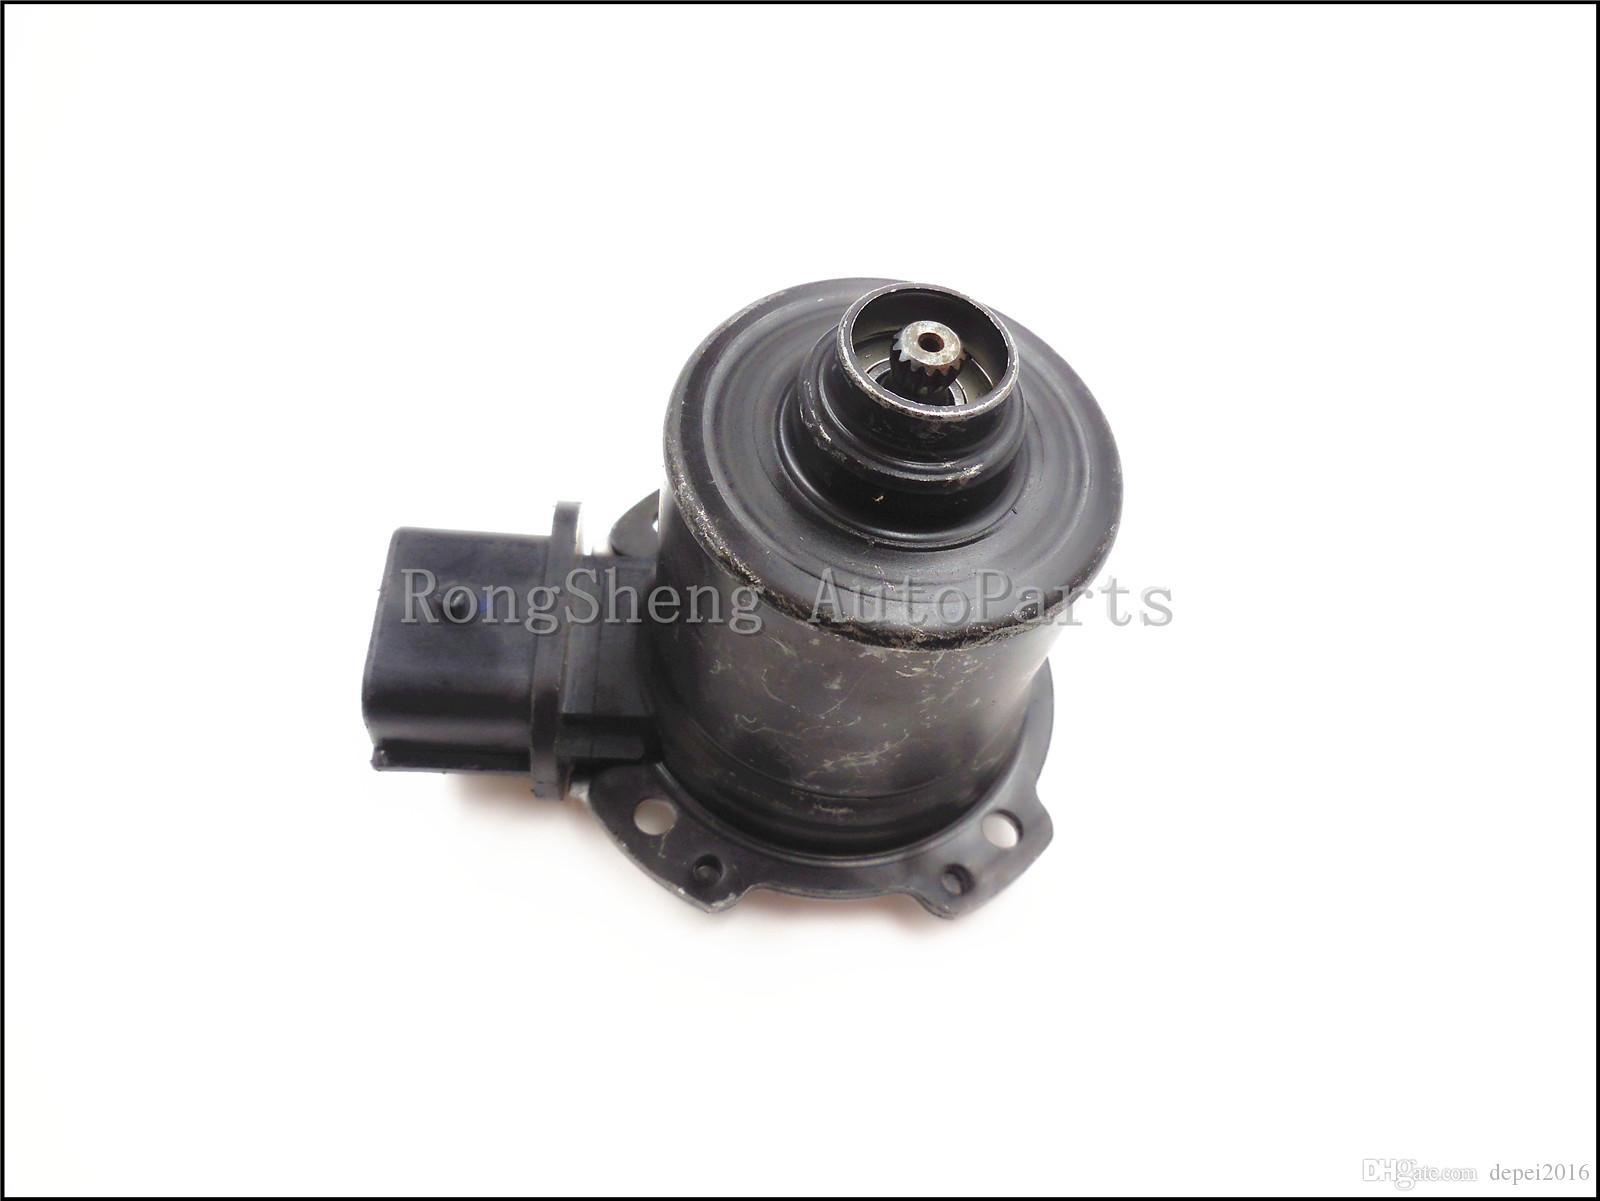 Automatic Transmission Clutch Actuator AE8Z7C604A For Ford Fiesta